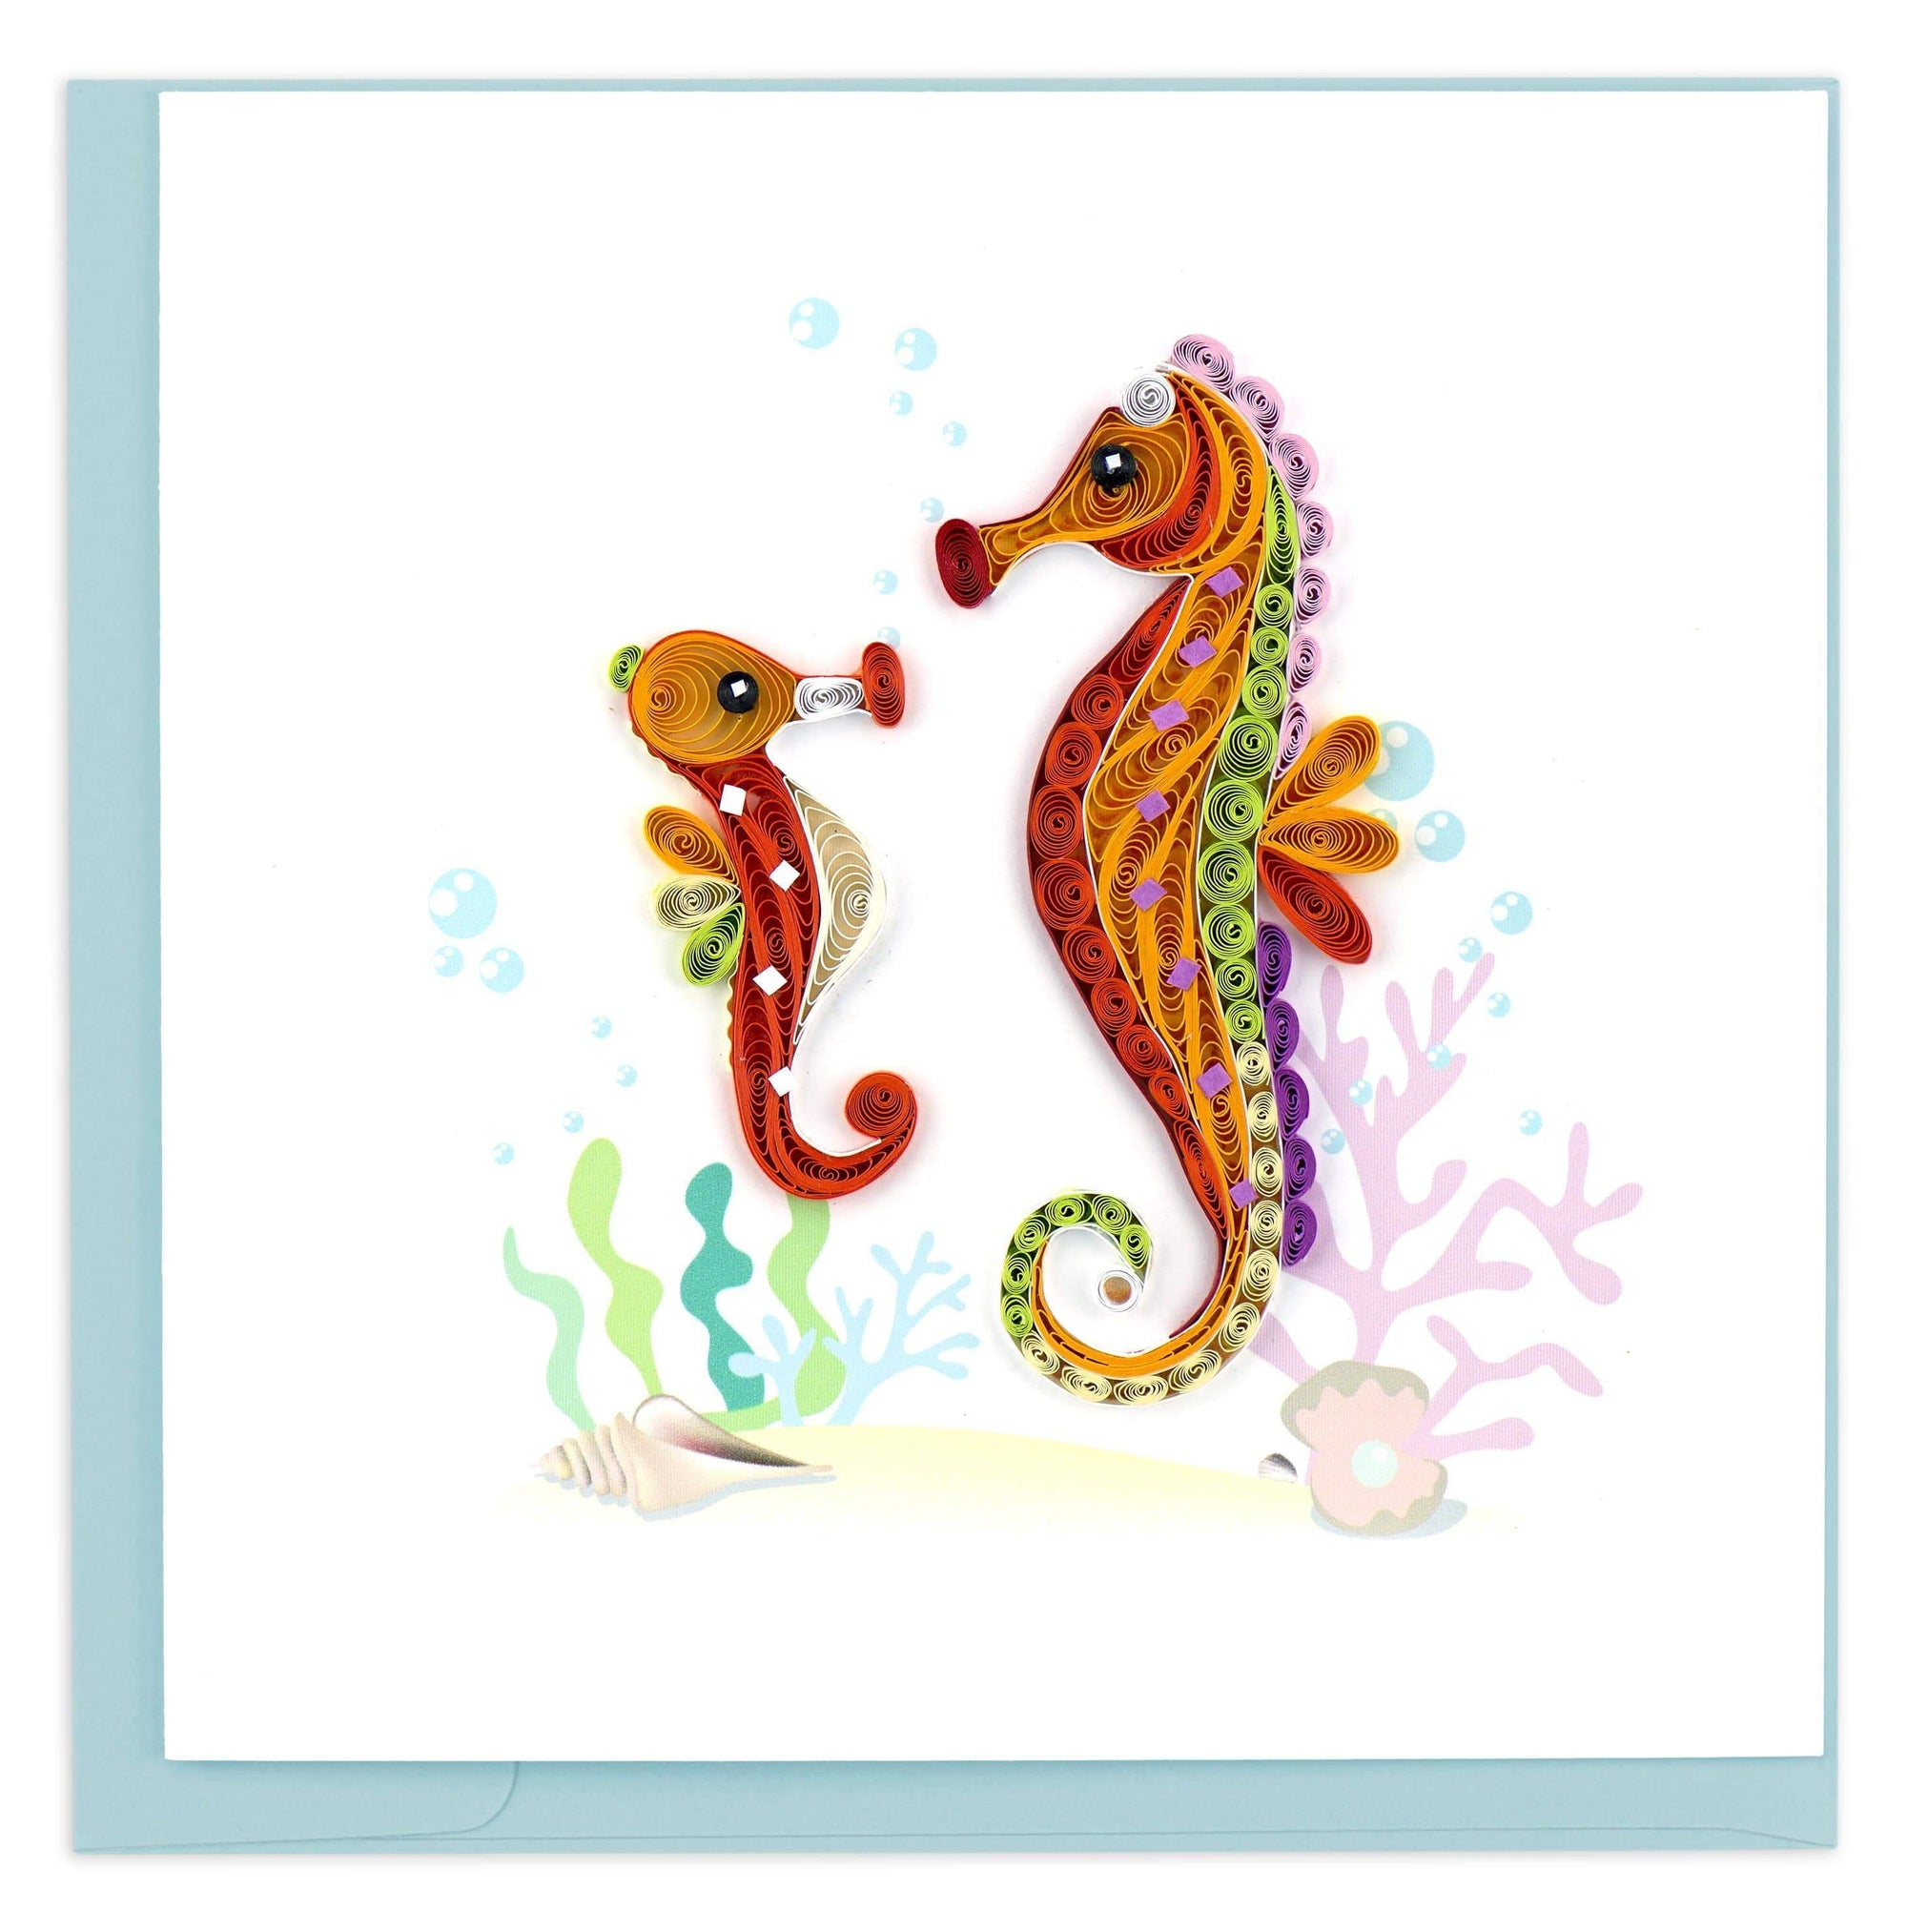 Seahorse (IS)